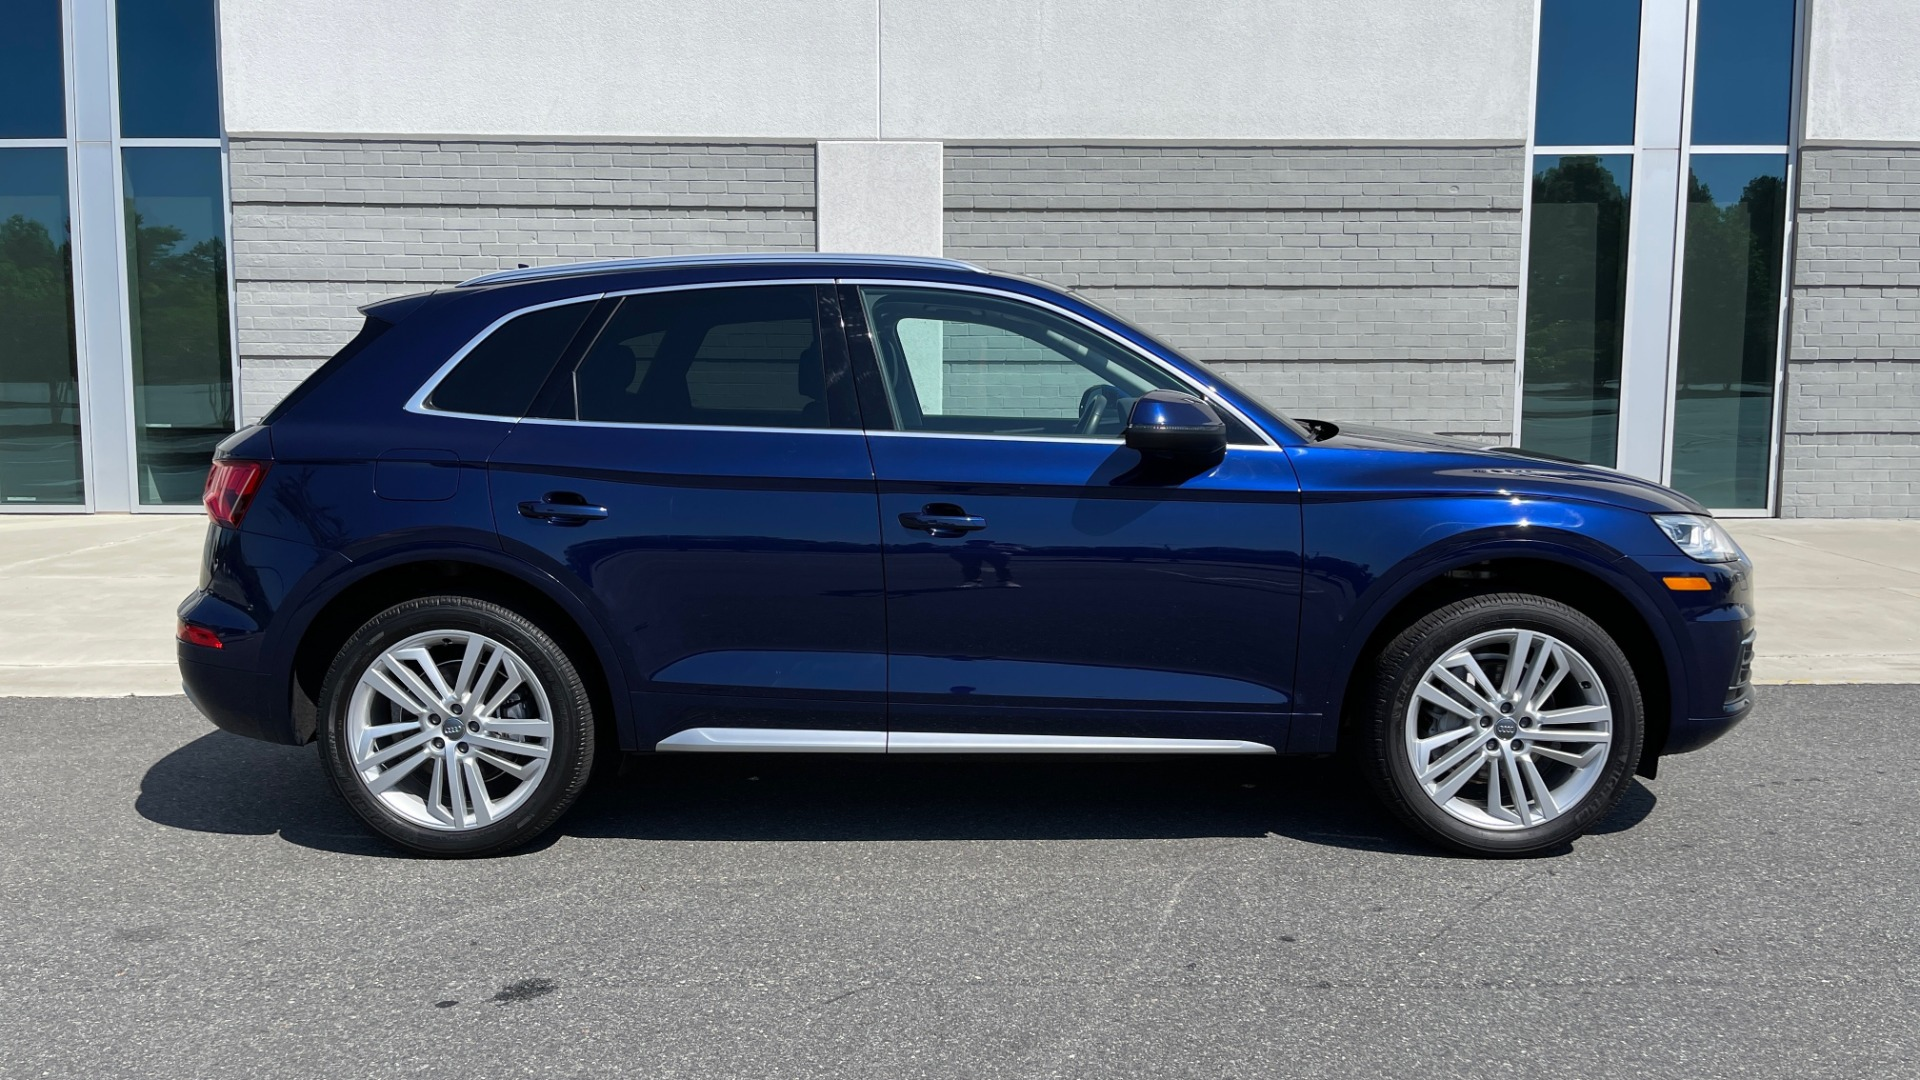 Used 2018 Audi Q5 PREMIUM PLUS / NAV / PANO-ROOF / PARK SYSTEM / REARVIEW for sale $33,695 at Formula Imports in Charlotte NC 28227 7